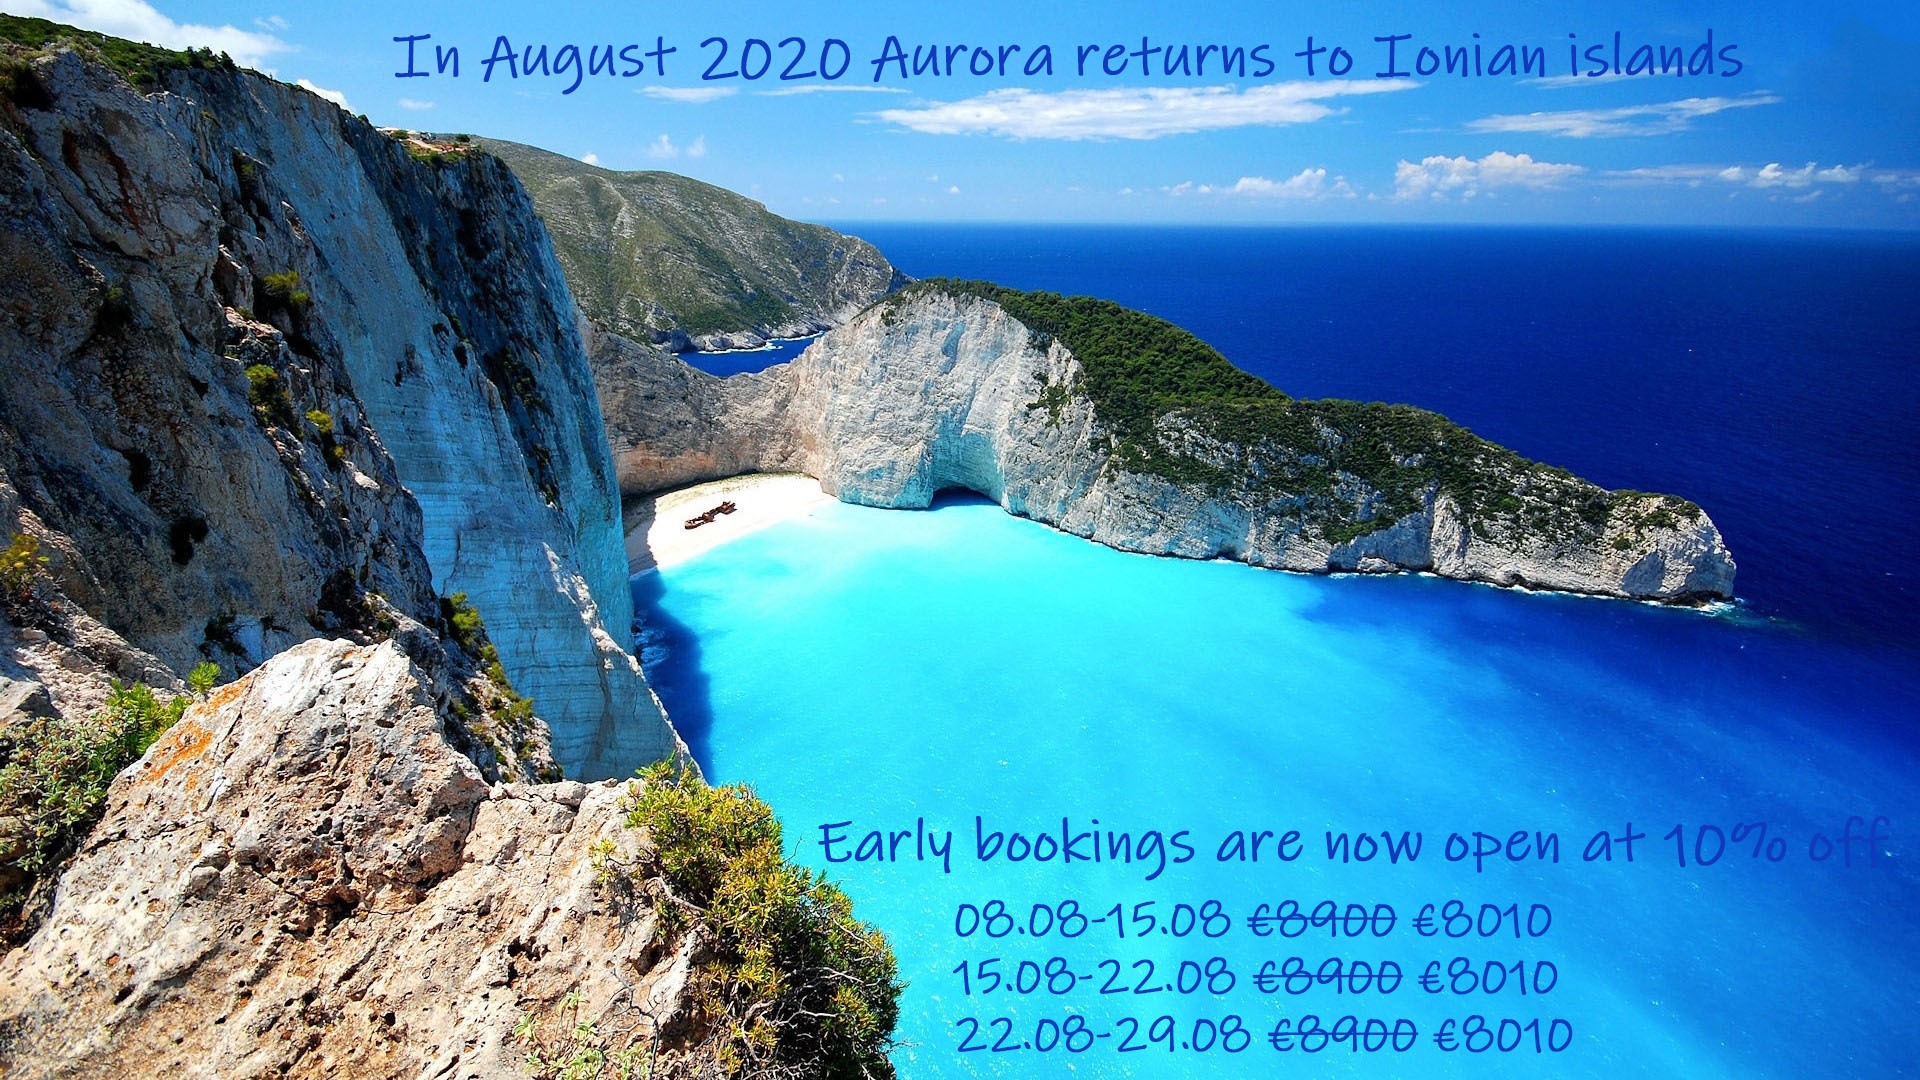 In August 2020 Aurora returns for 6 weeks in the Ionian islands